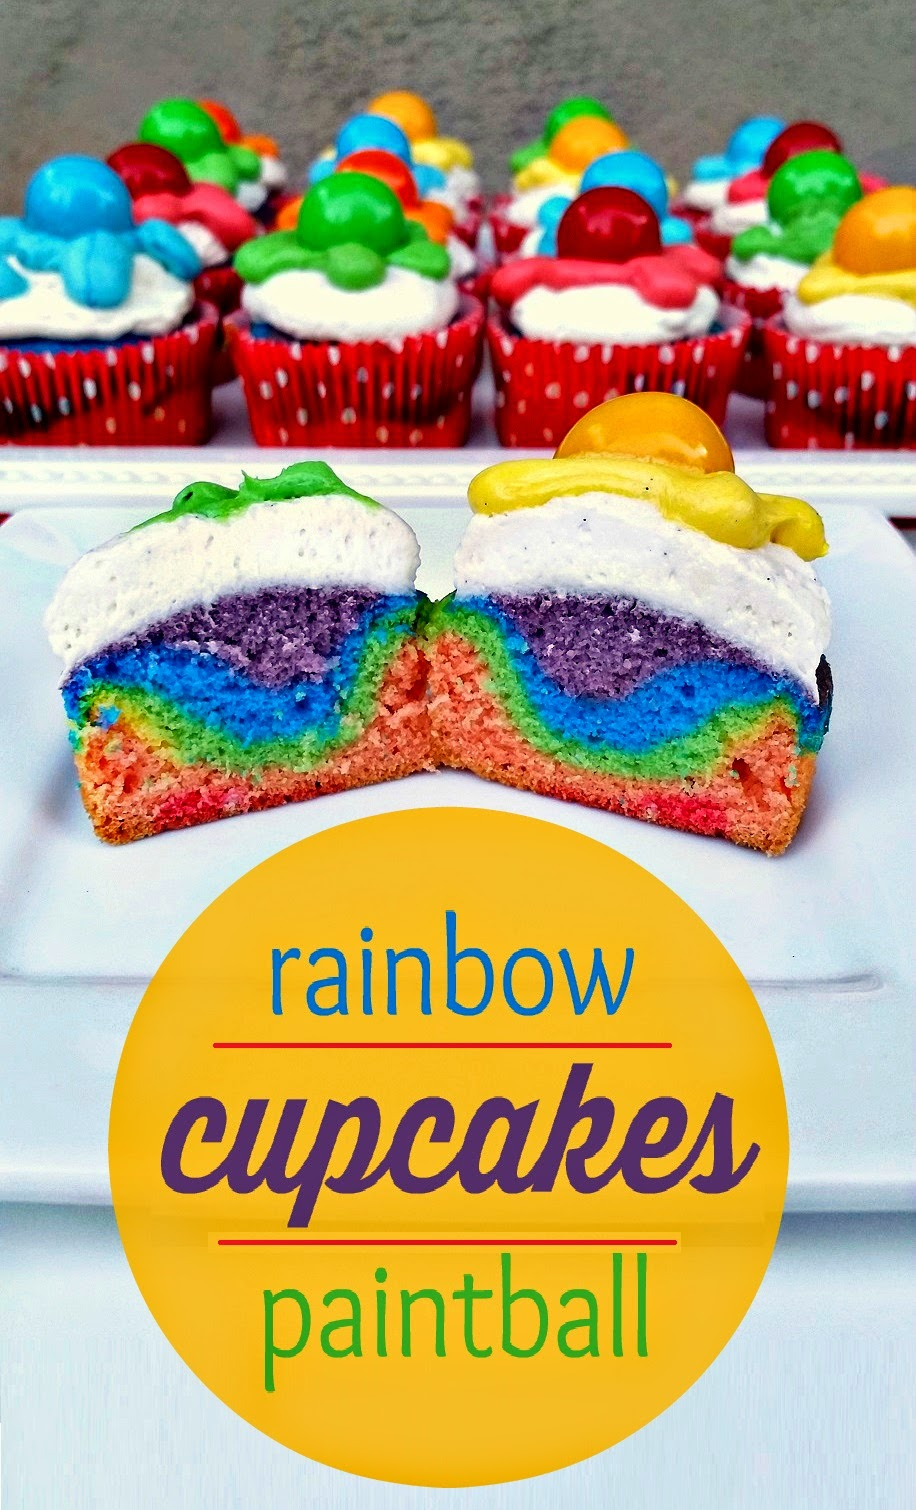 rainbow cupcakes for a paintball party